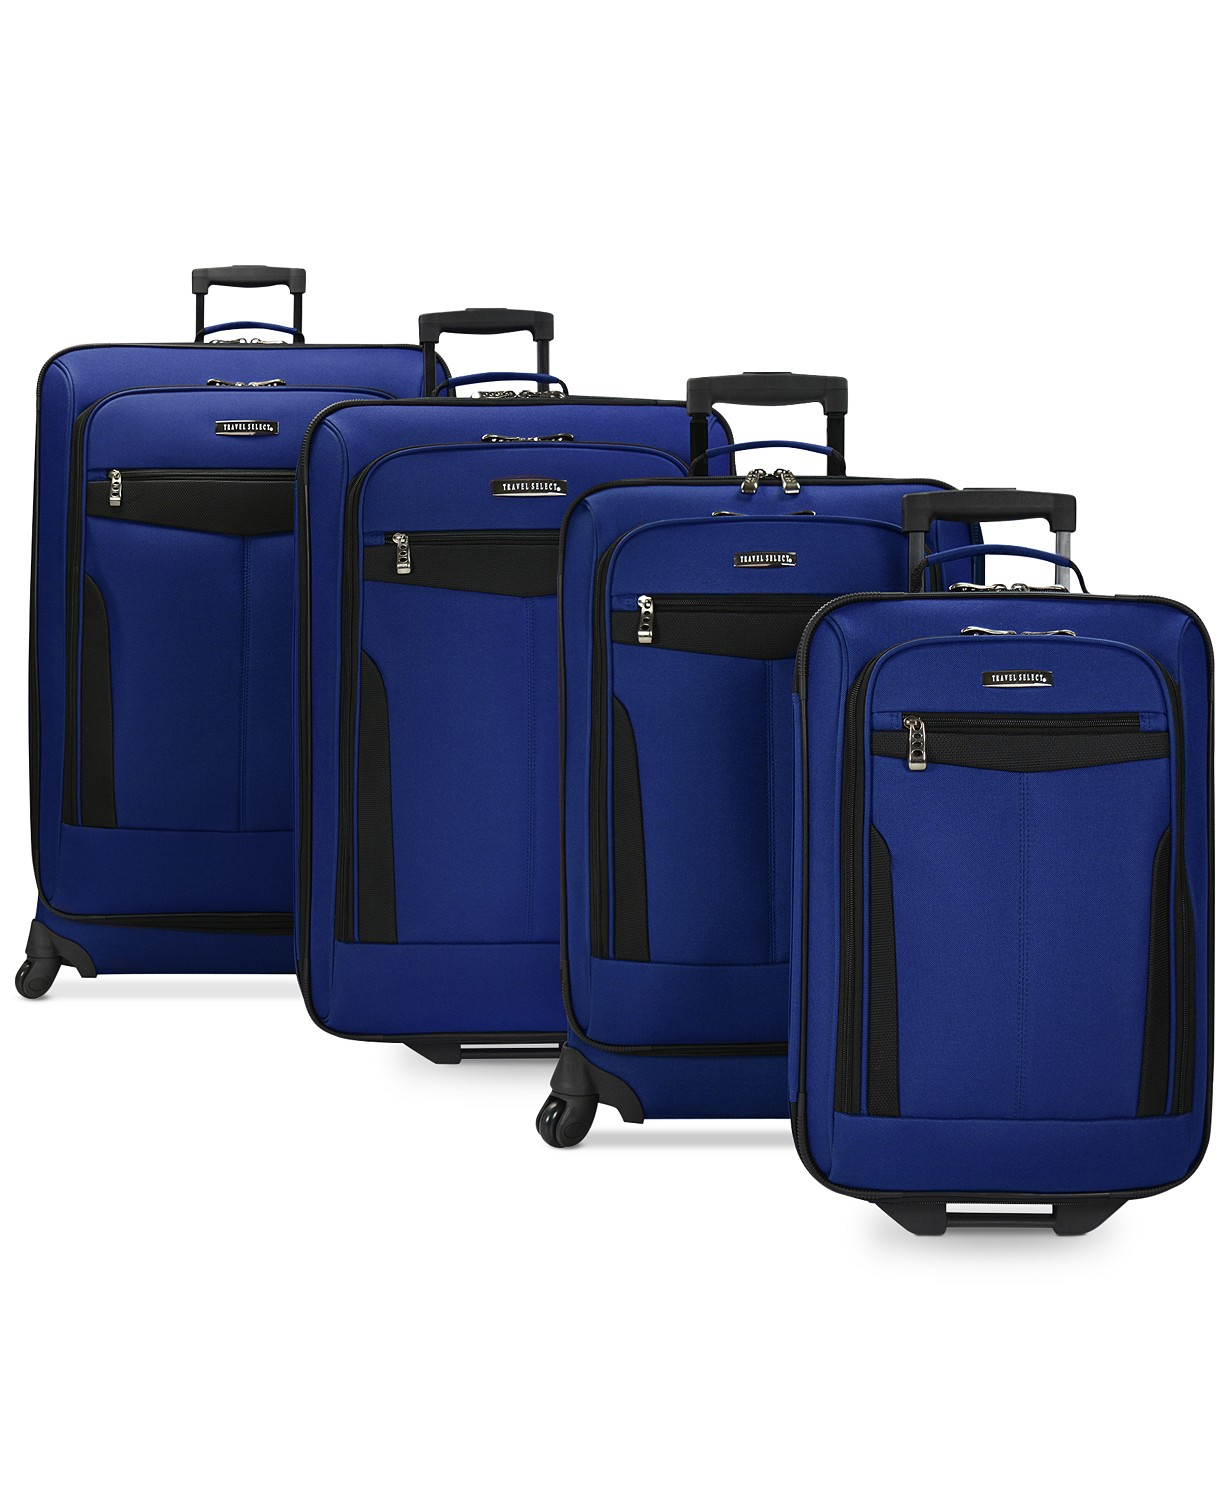 Travel Select Segovia 4-Piece Spinner Luggage Set